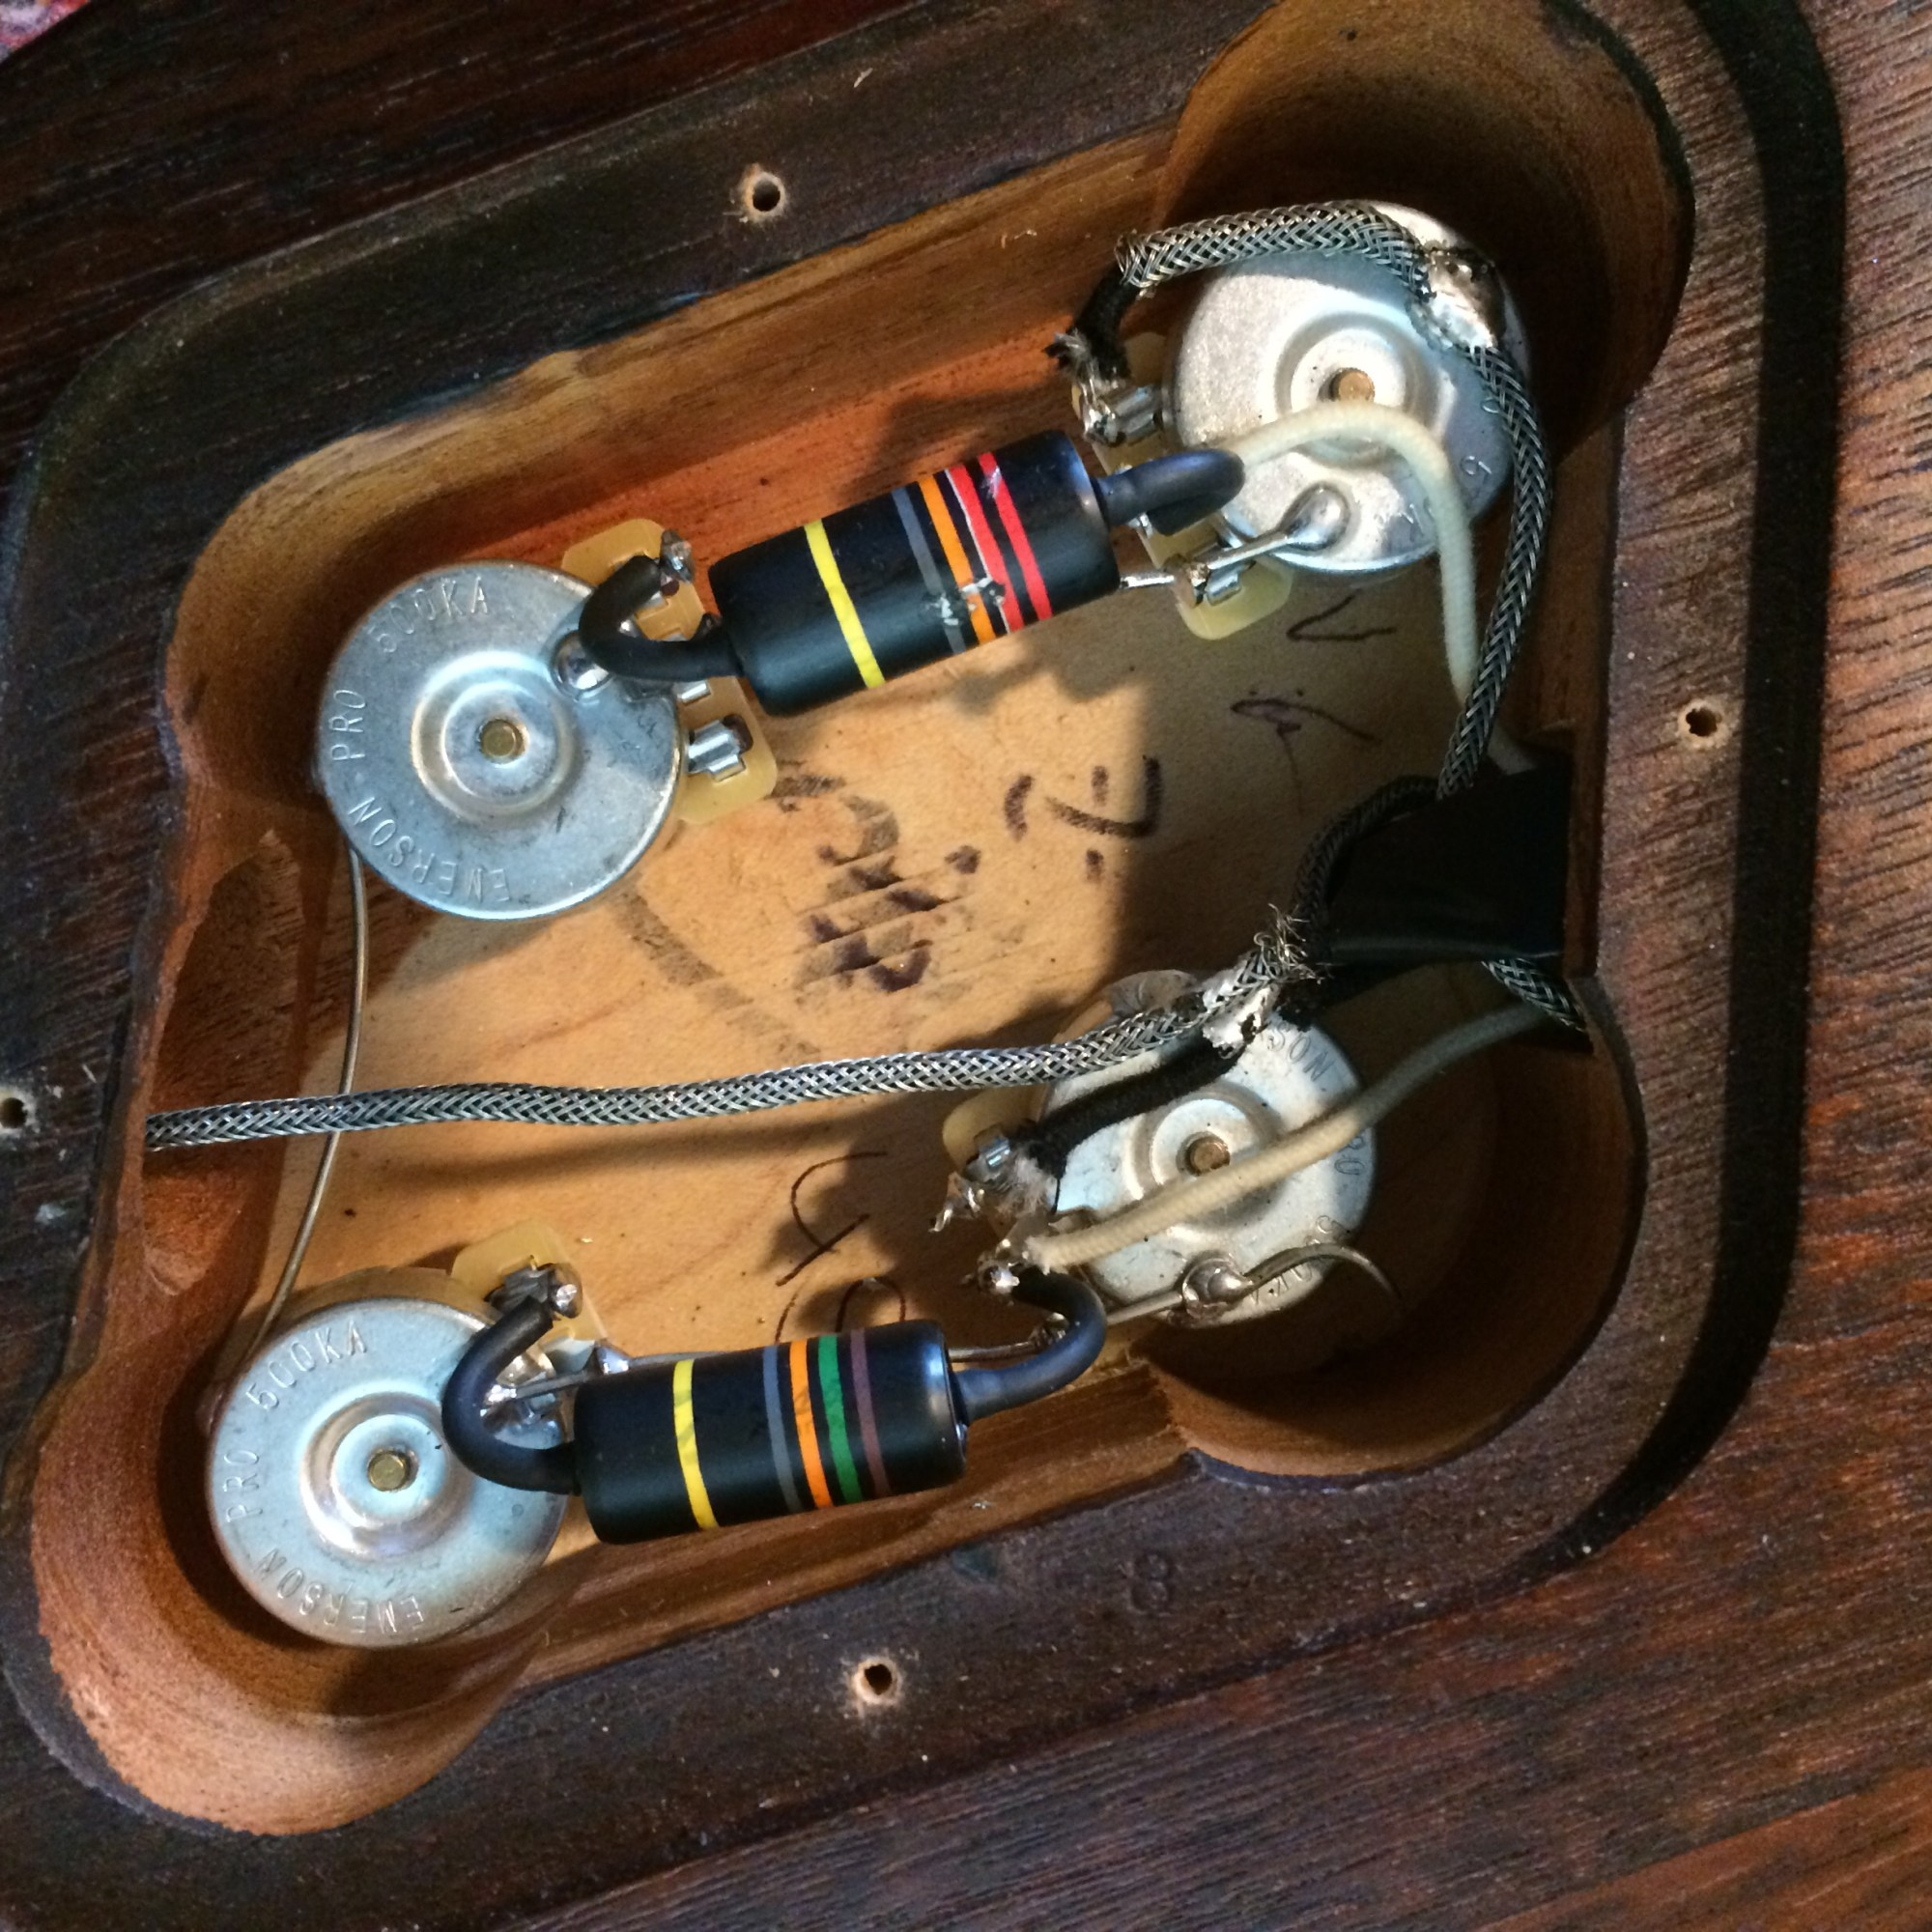 hight resolution of les paul custom wiring harness wiring library rh 62 bloxhuette de les paul custom wiring 3 pickup jimmy page les paul custom black beauty wiring